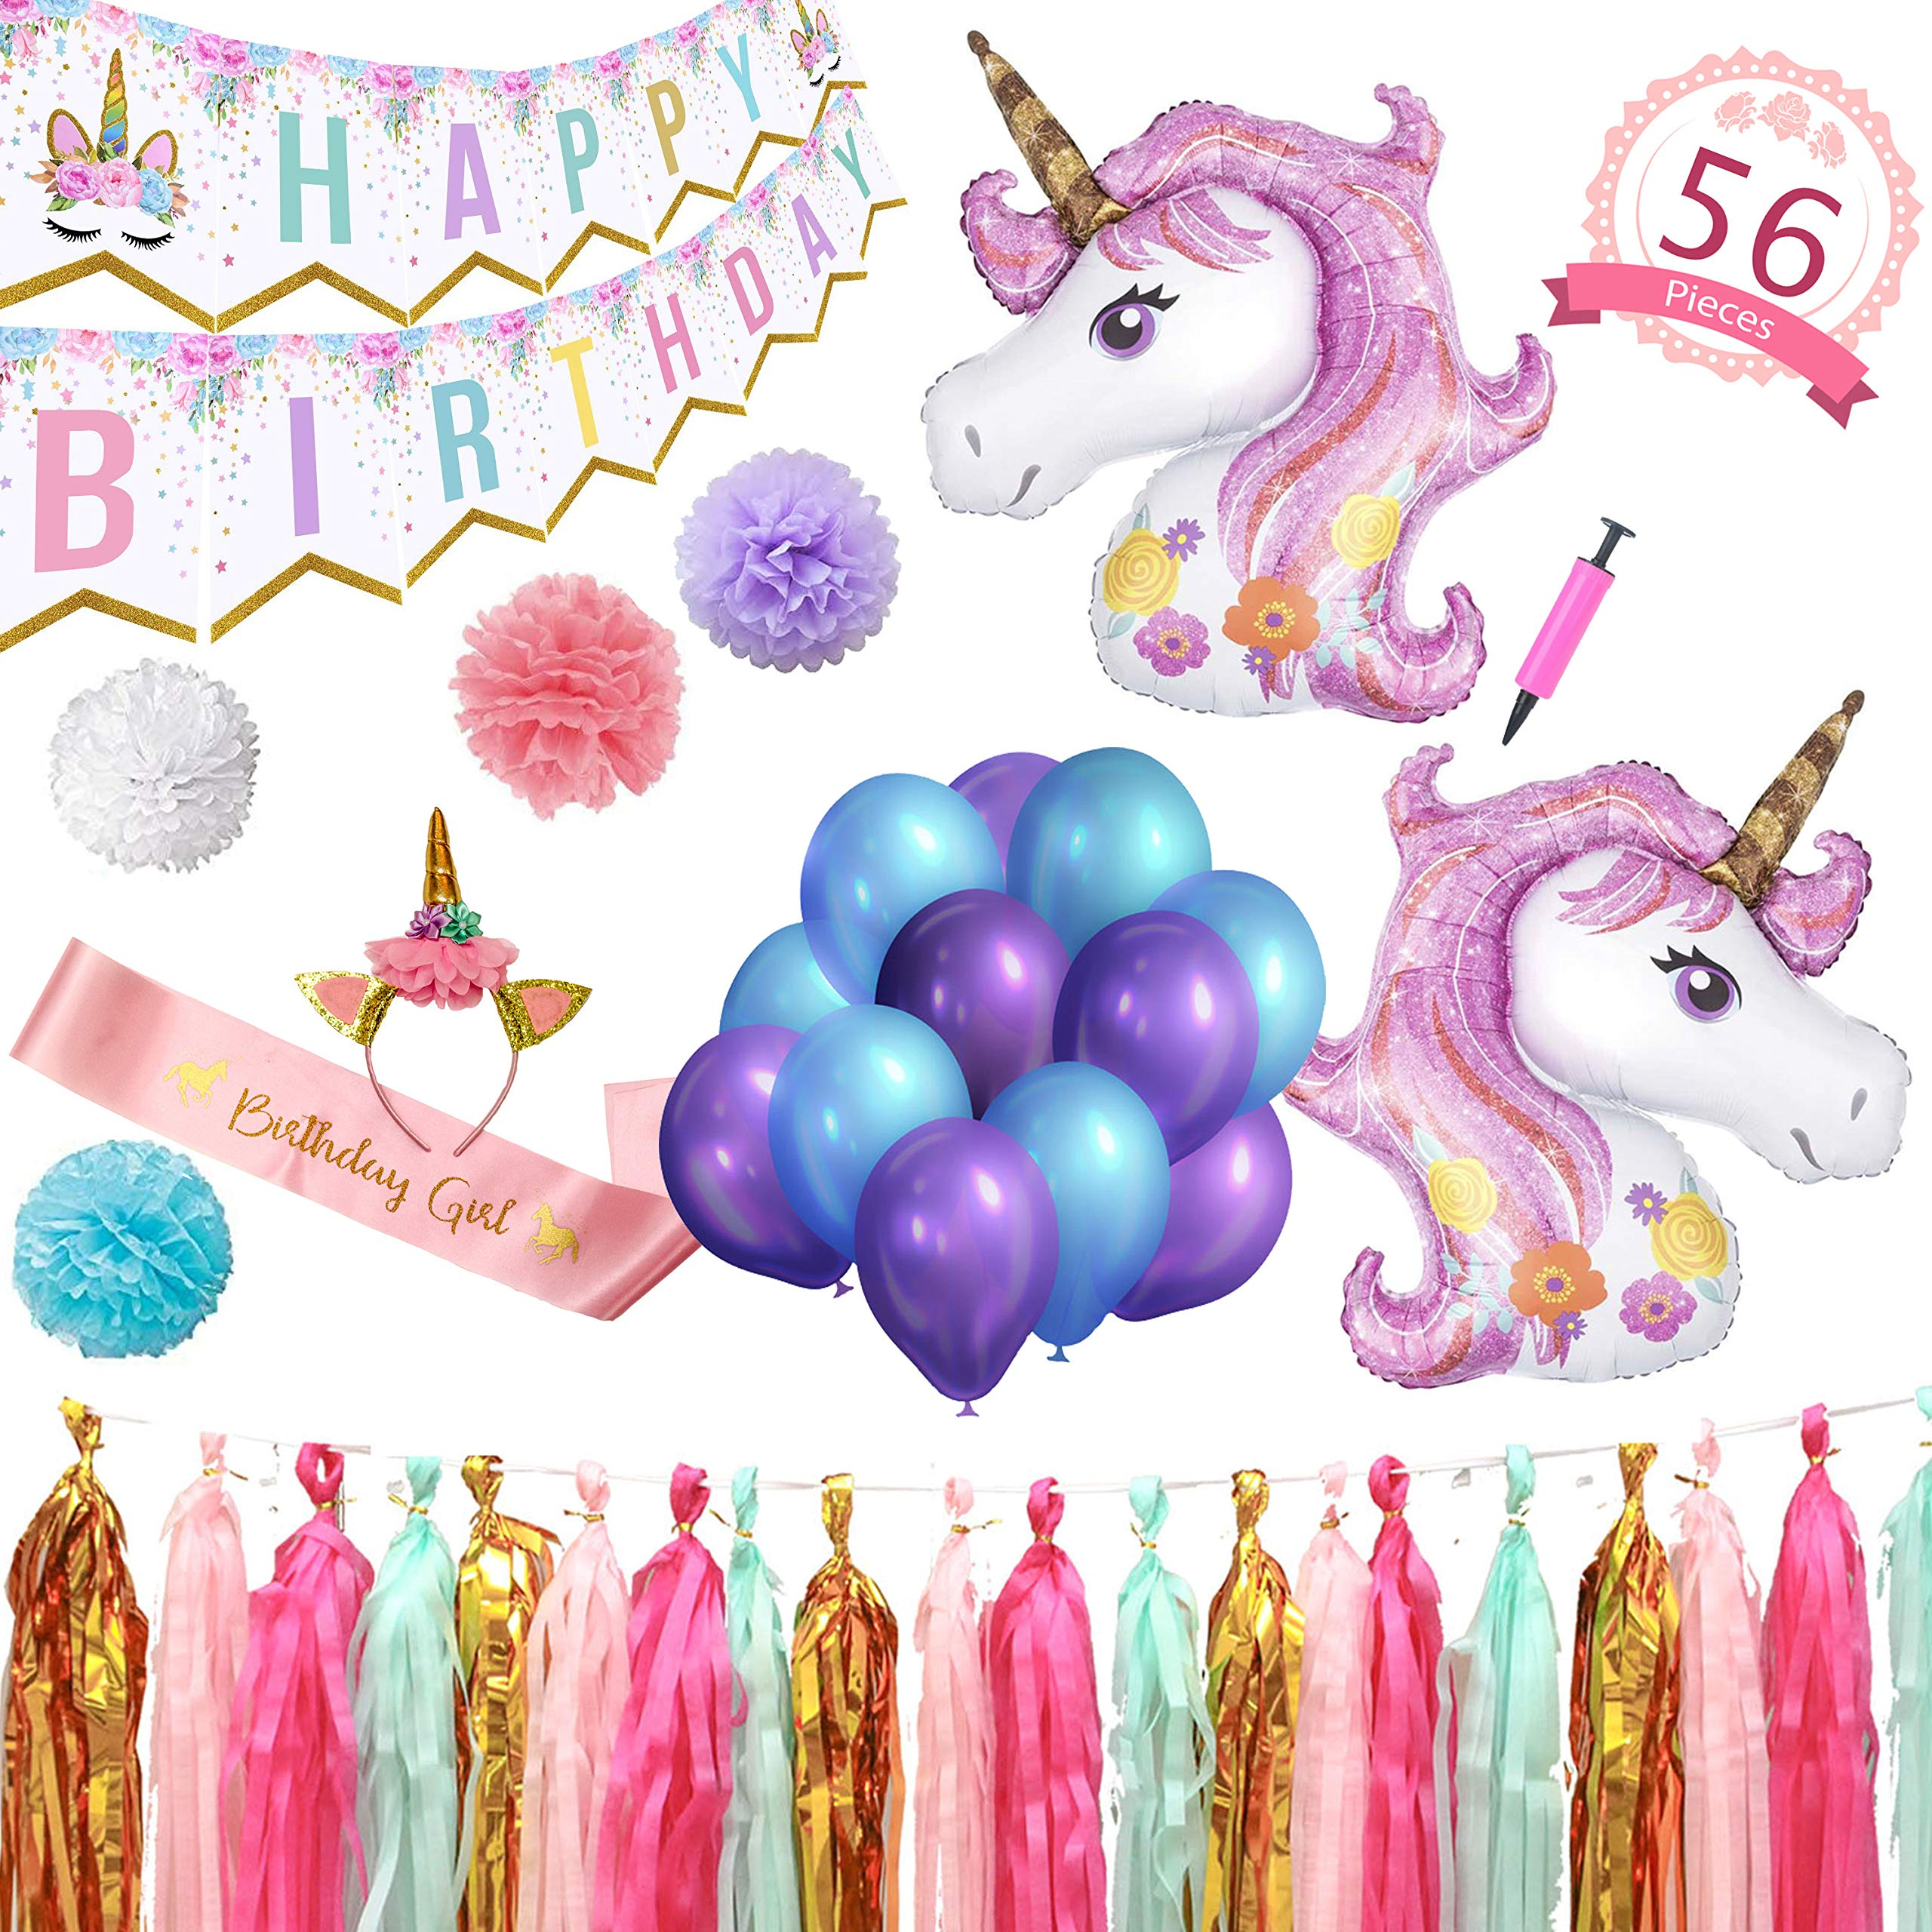 Party Maniak Unicorn Party Supplies Decorations for Girls with Banner, Foil and Latex Balloons, Birthday Sash, Headband, Tassels and Pom Pom - 56 Pieces